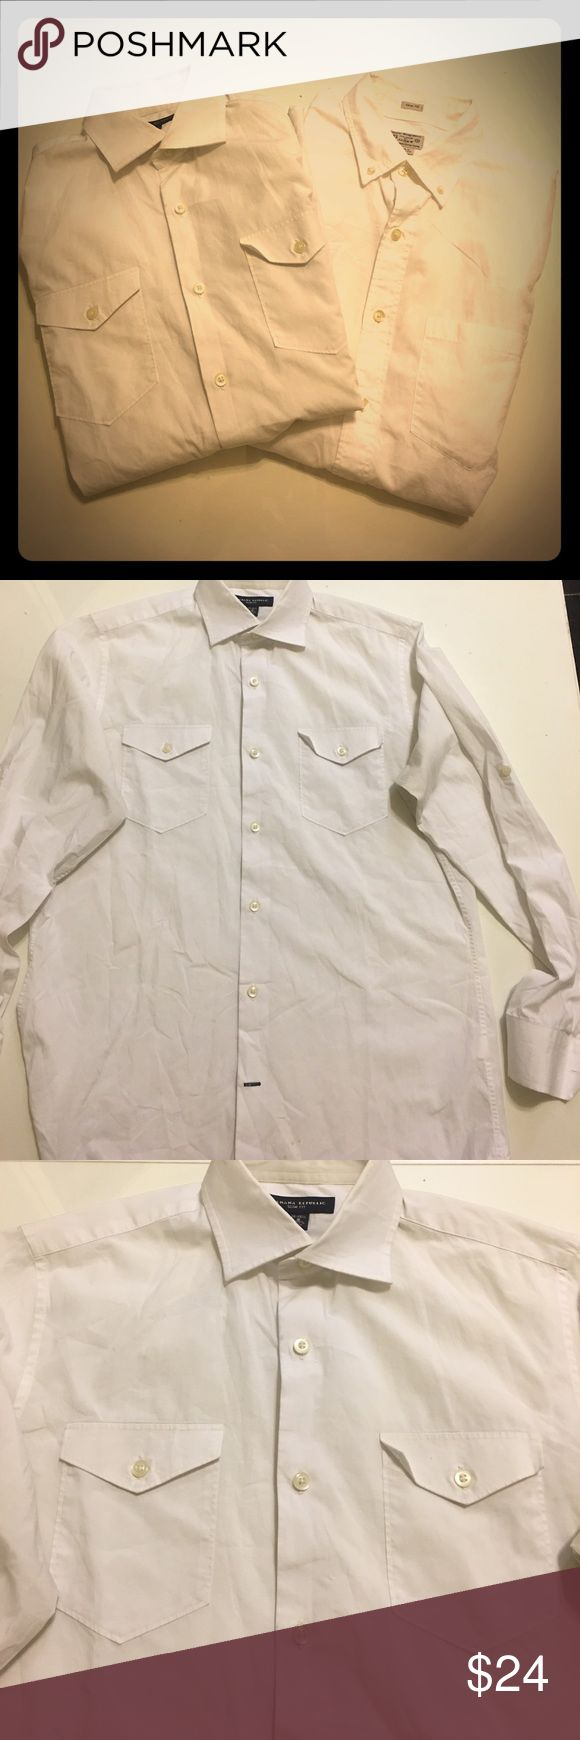 Bundle of 2 White Button Down Collared Shirts S One is a Banana Republic slim fit size small, 14-14.5, with 2 front button pockets and buttons on the upper arms to roll up and secure the sleeves. It has tiny dot stains on the front lower part where you tuck it in. Otherwise great condition. The other is a J.Crew slim fit size small with one front chest pocket, no stains, classic white shirt you wear with a suit or however you wear a white button down. Both 100% cotton. This price is for both…